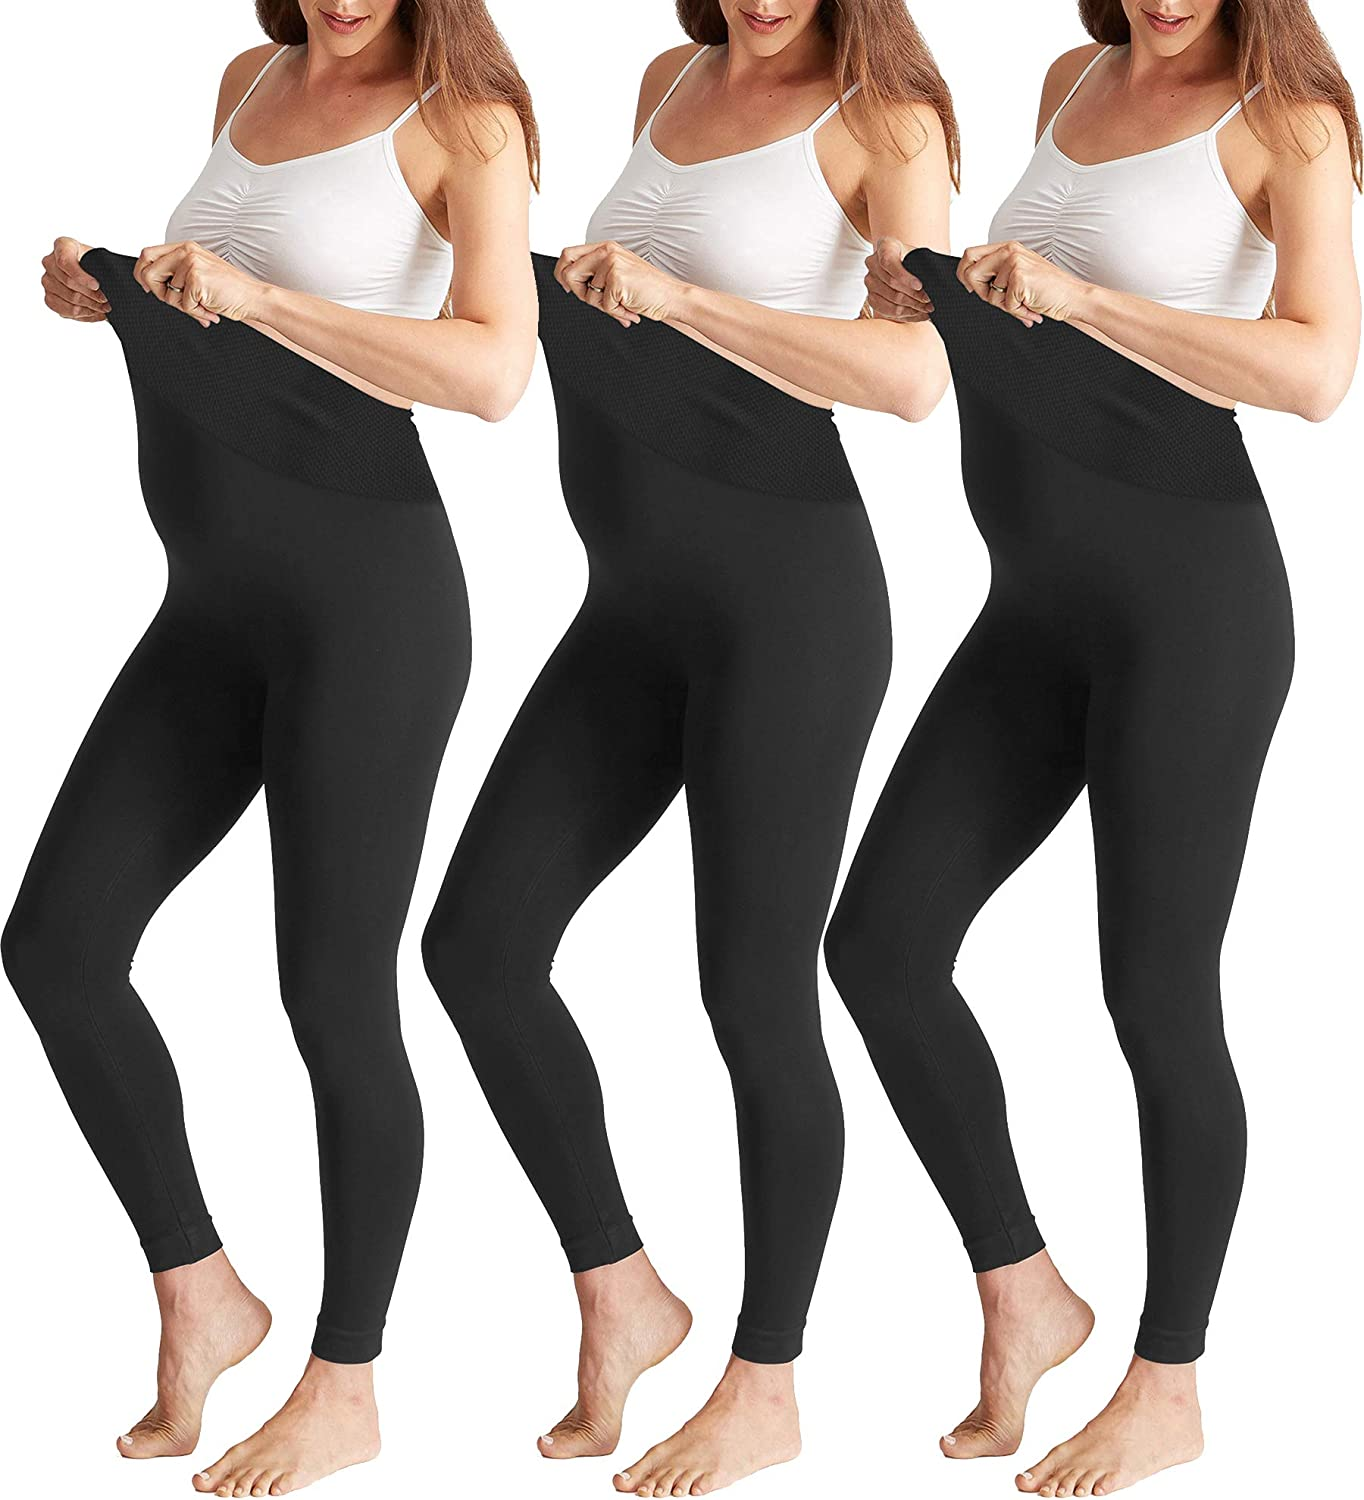 PACBREEZE Maternity Leggings Over The Belly Stretchy Maternity Yoga Pants Pregnant Trousers